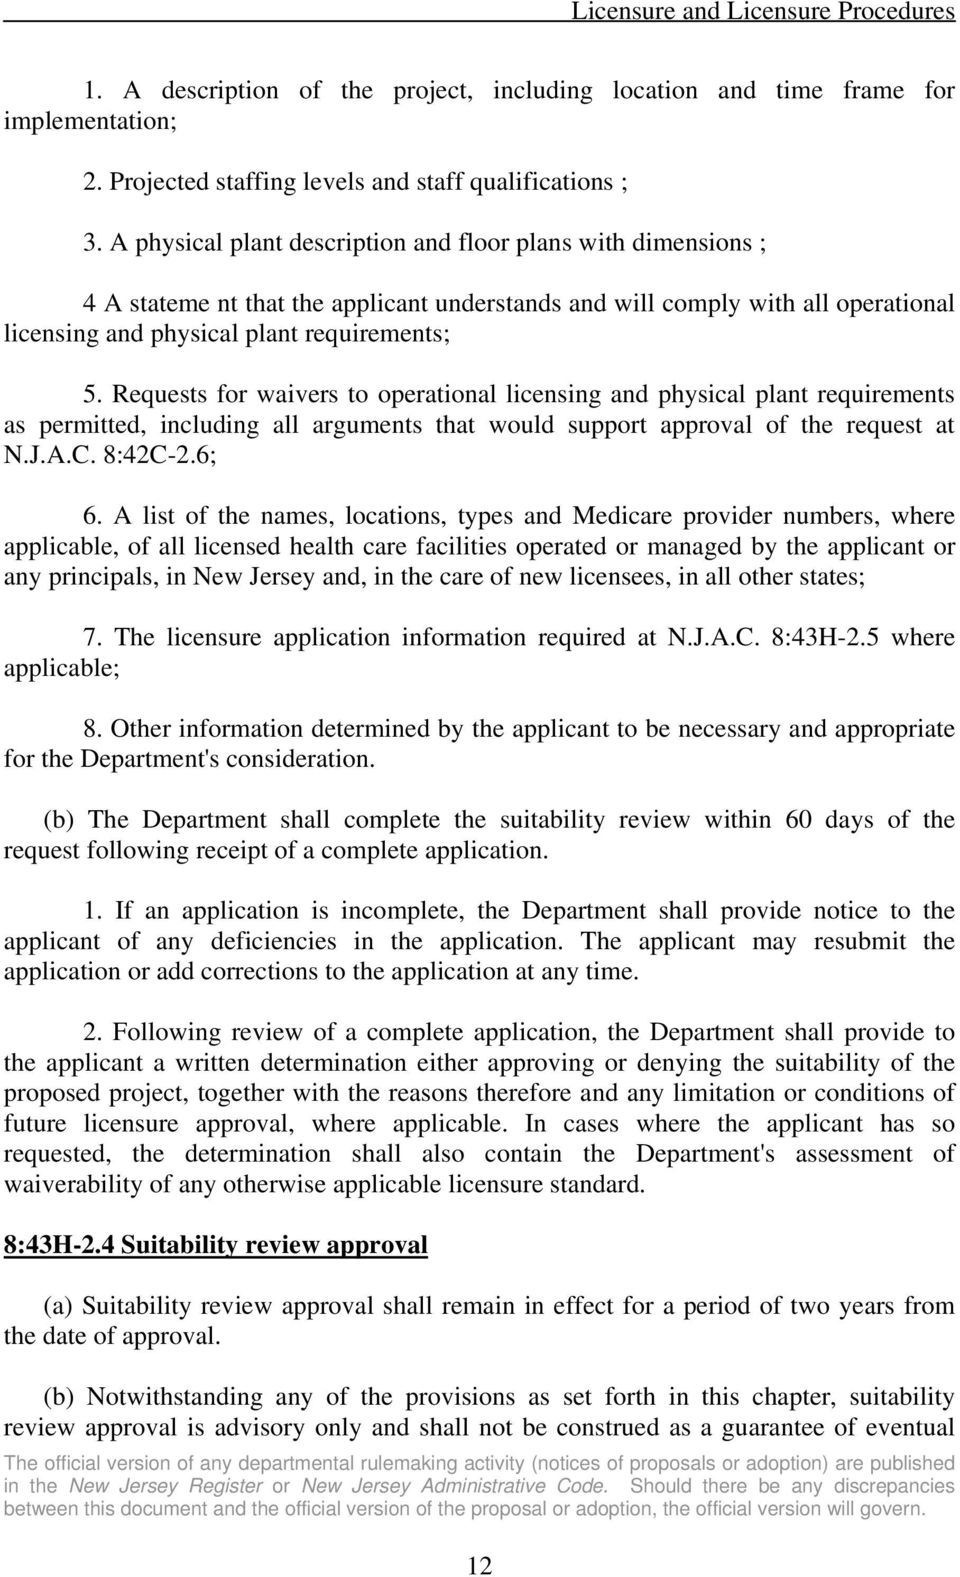 Requests for waivers to operational licensing and physical plant requirements as permitted, including all arguments that would support approval of the request at N.J.A.C. 8:42C-2.6; 6.